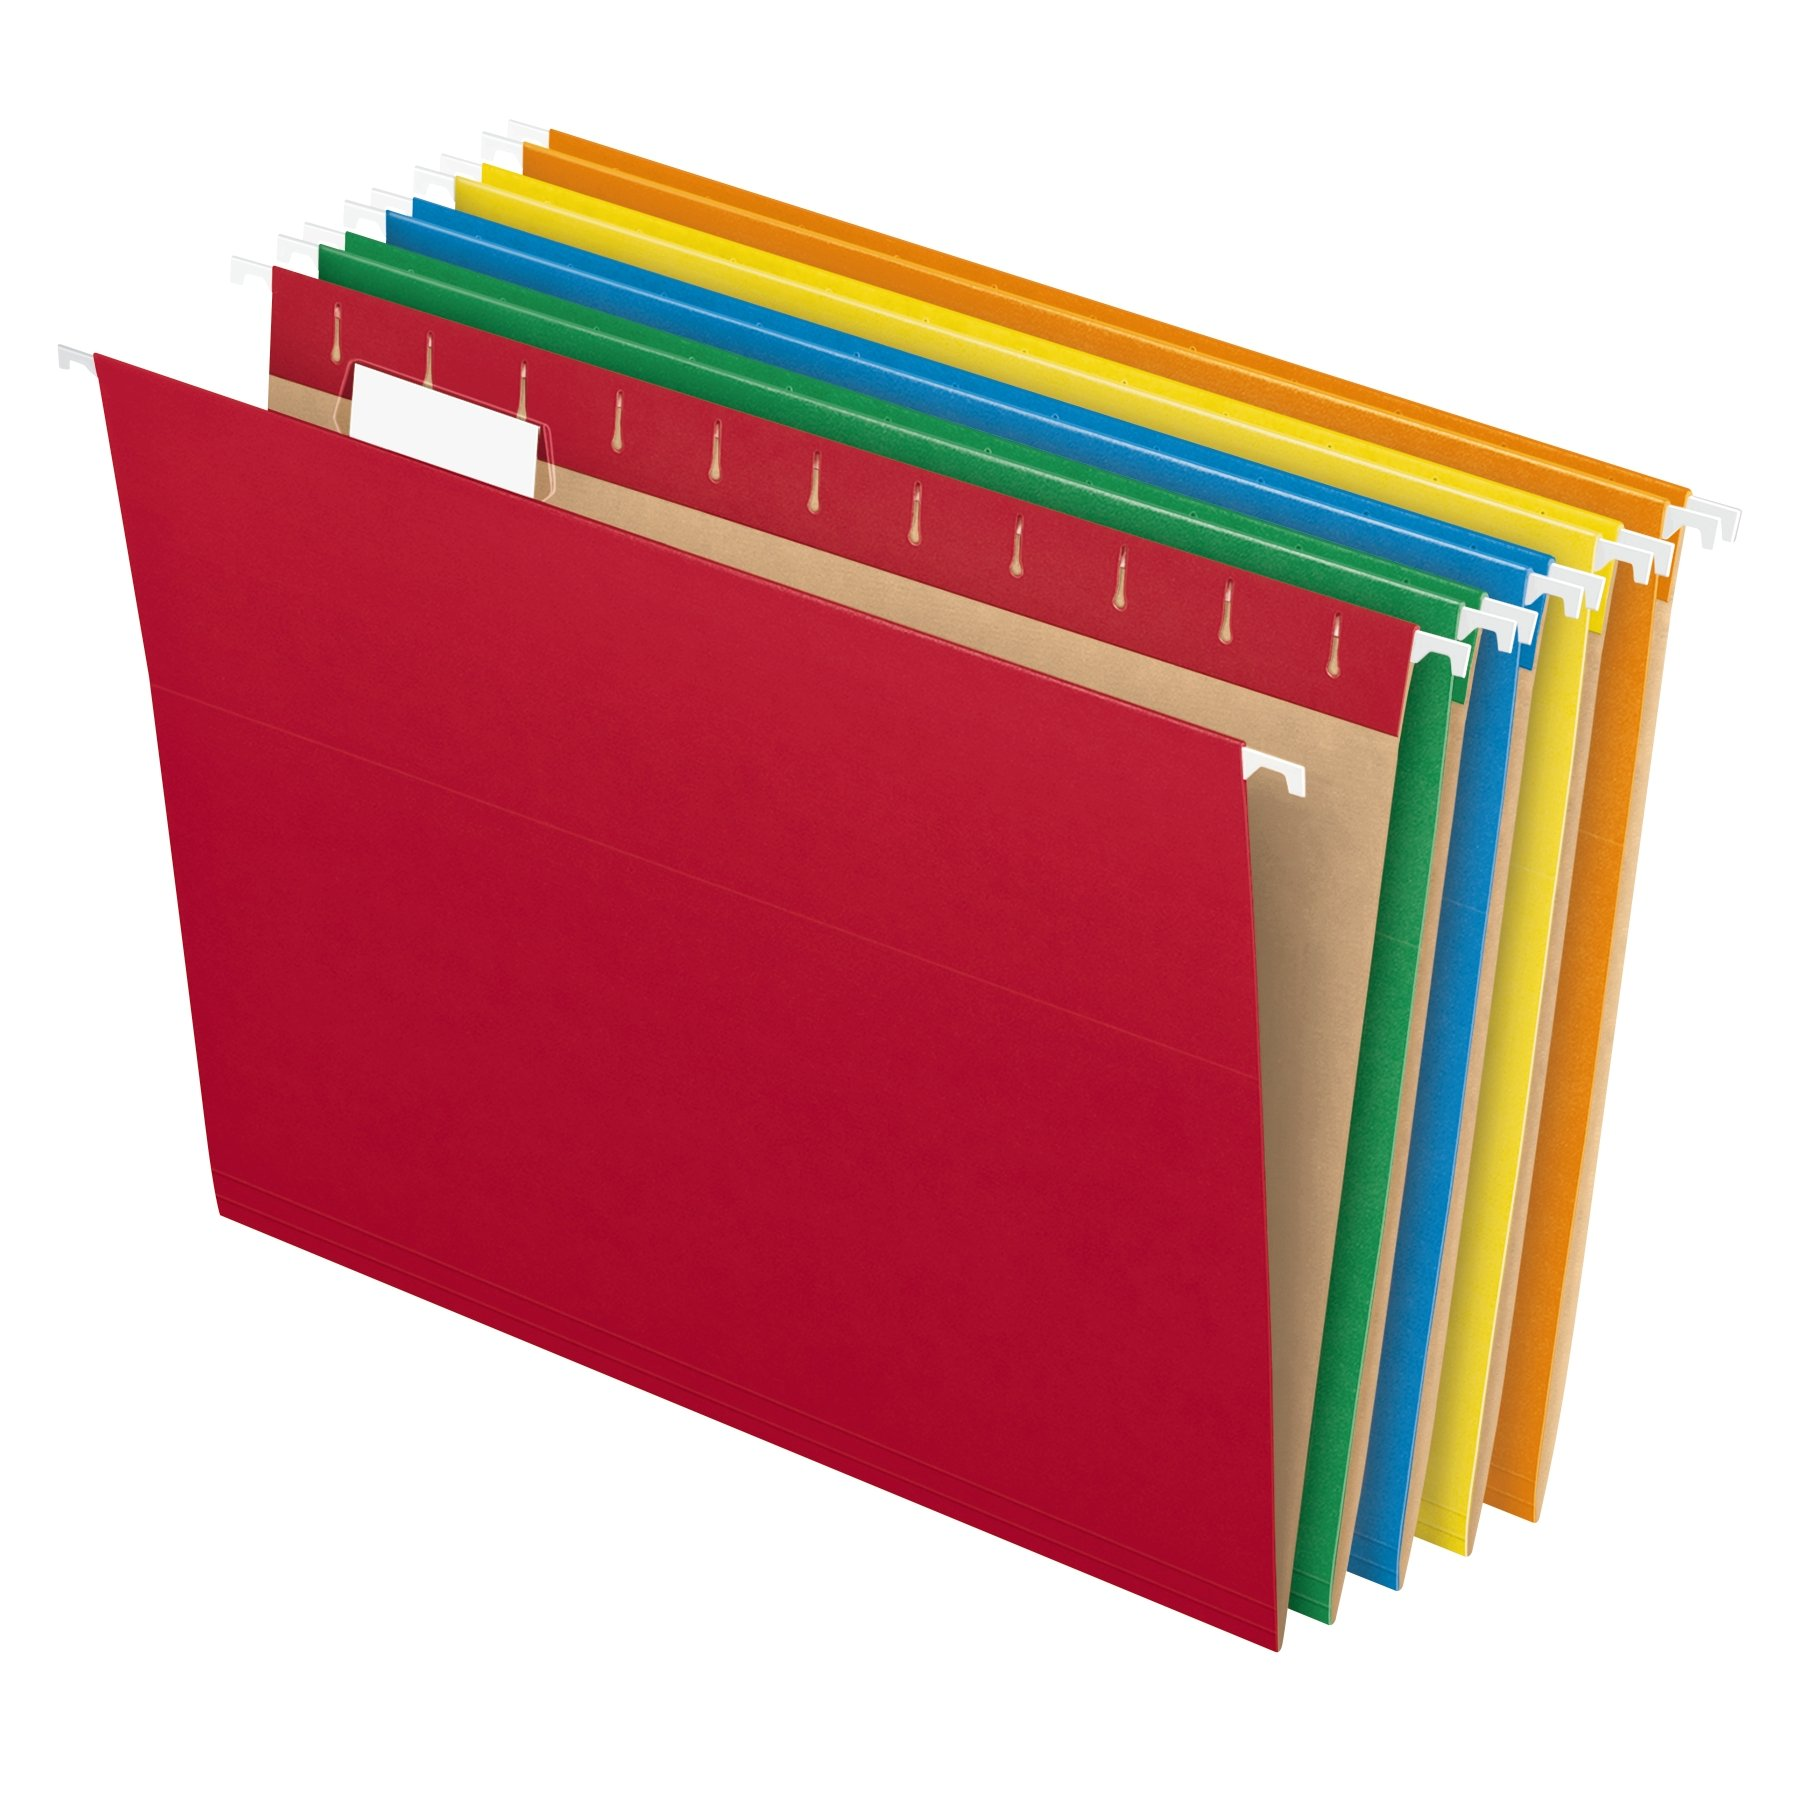 Pendaflex Recycled Hanging File Folders, Letter Size, Assorted Colors, Two-Tone for Foolproof Filing, 1/5-Cut Adjustable Tabs, 25 Per Box (81663)